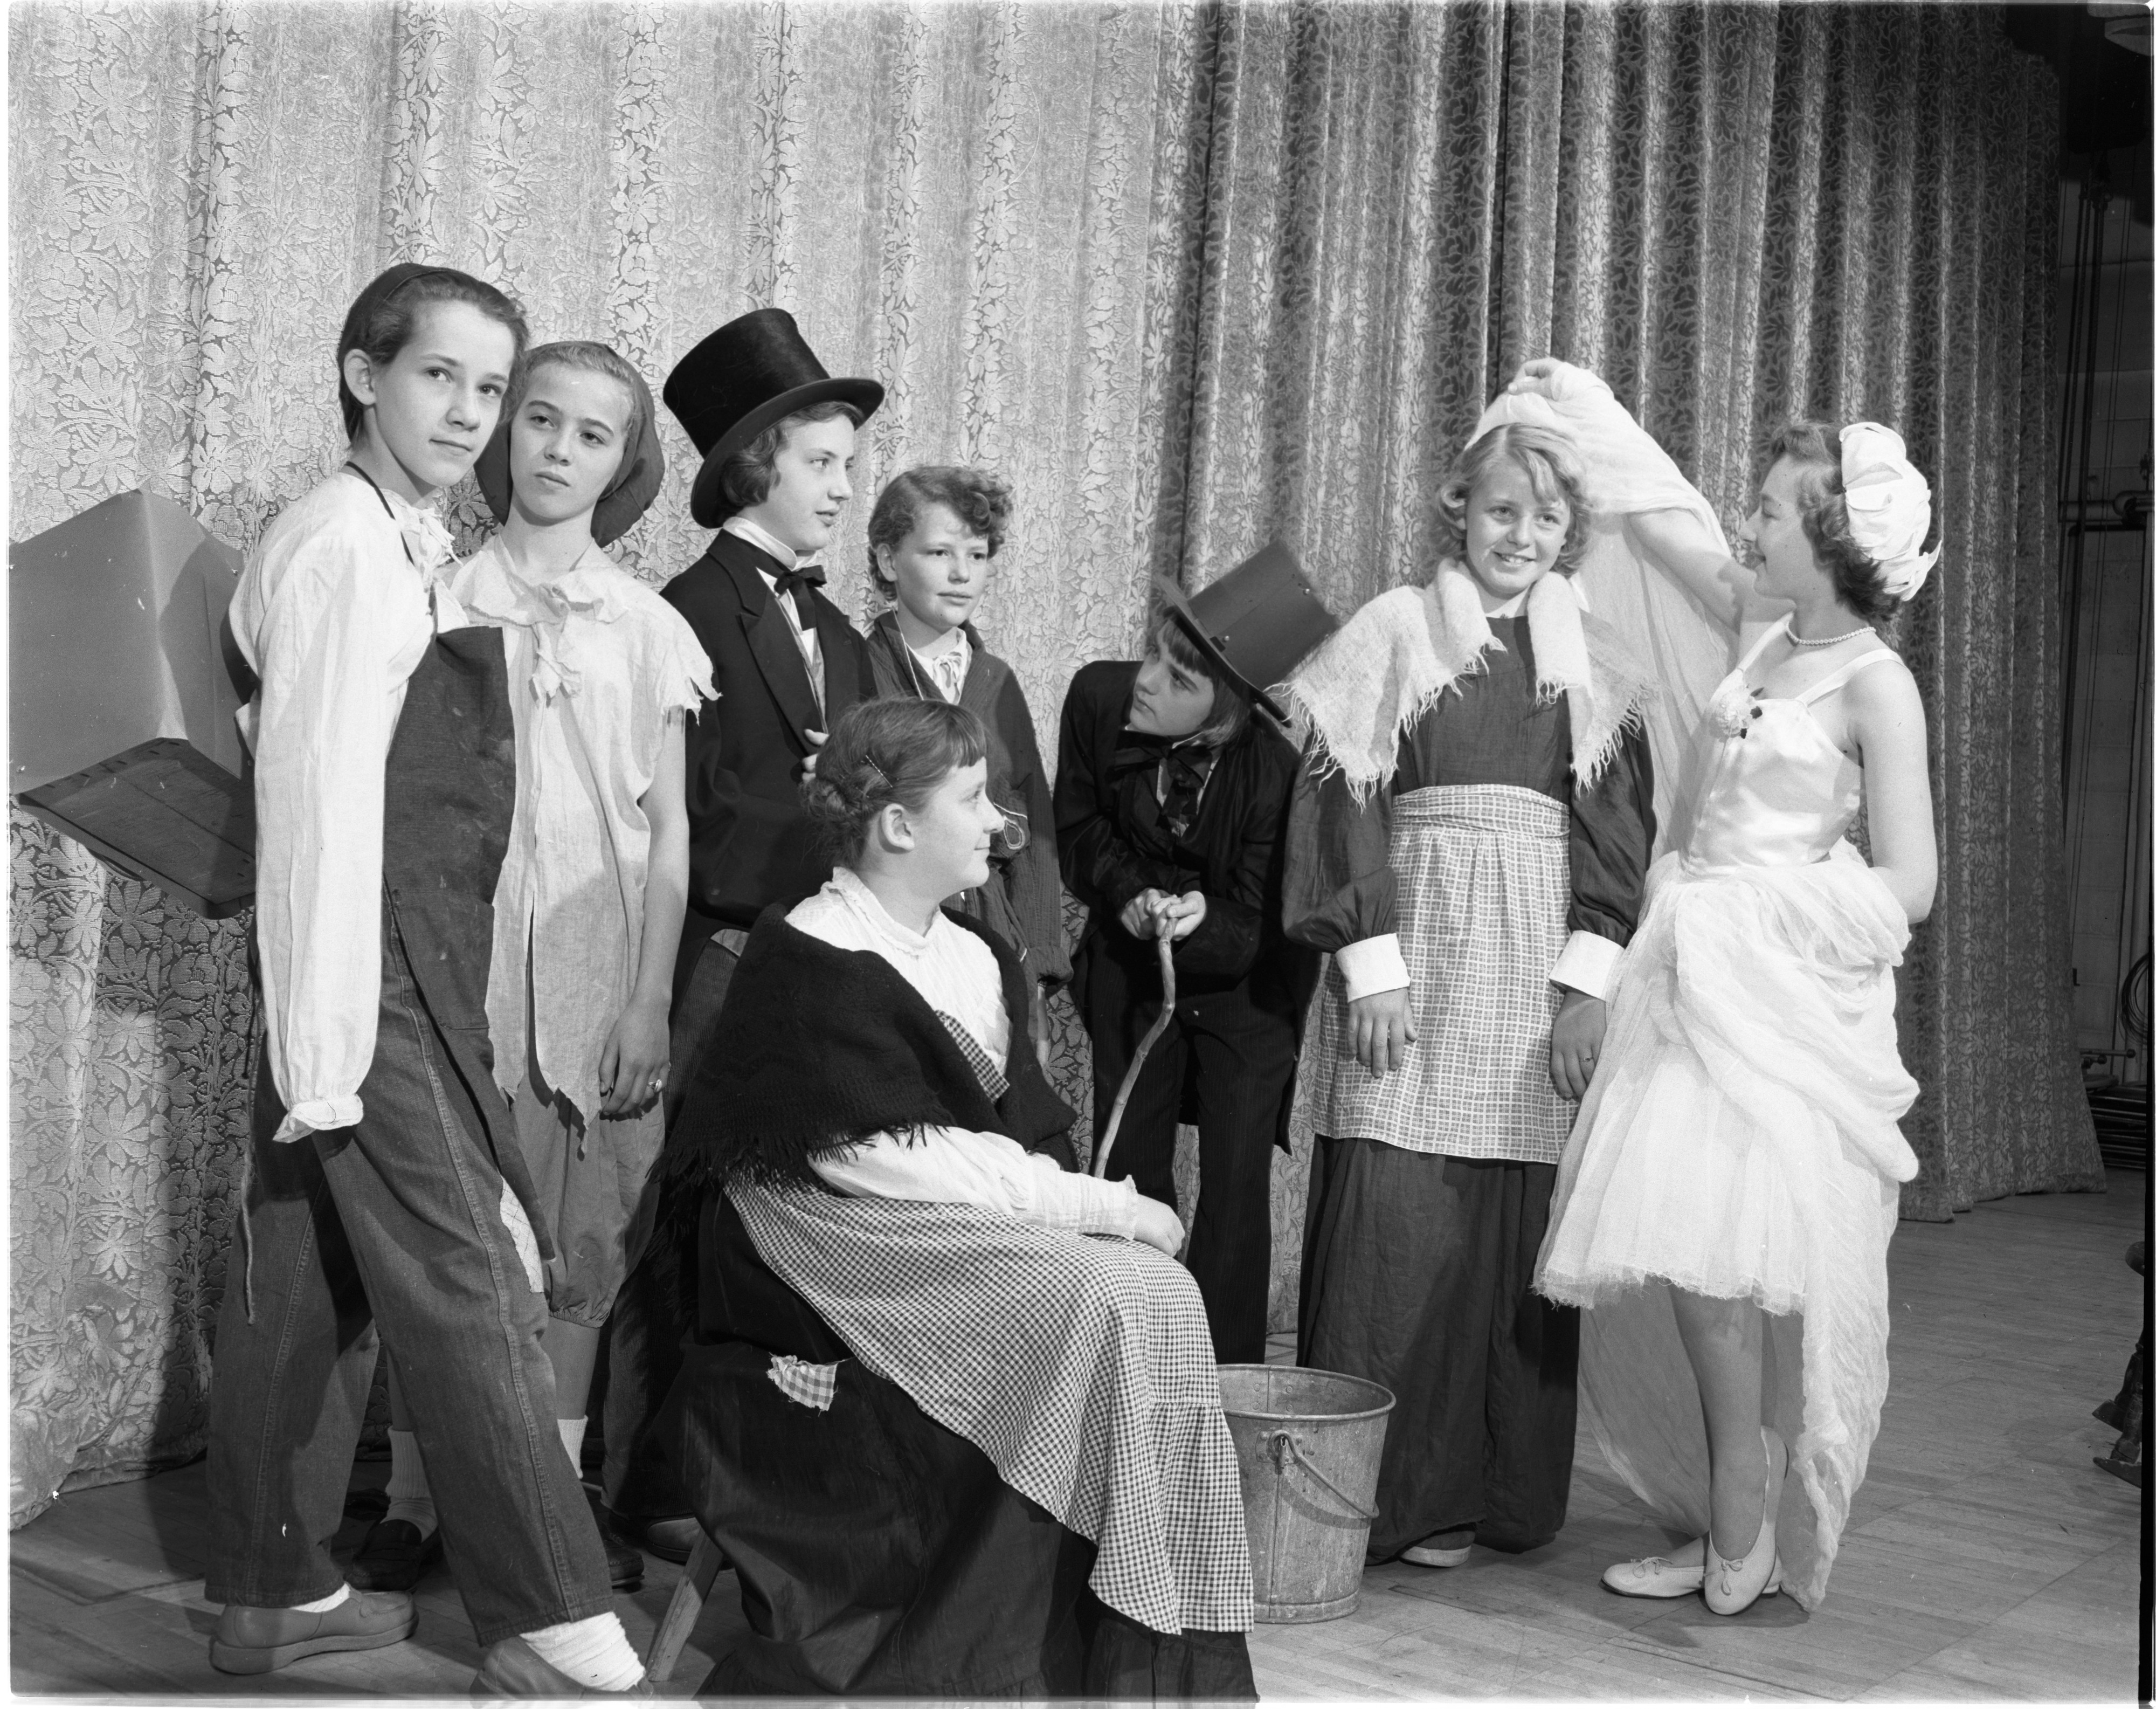 Slauson School Play, May 1953 image